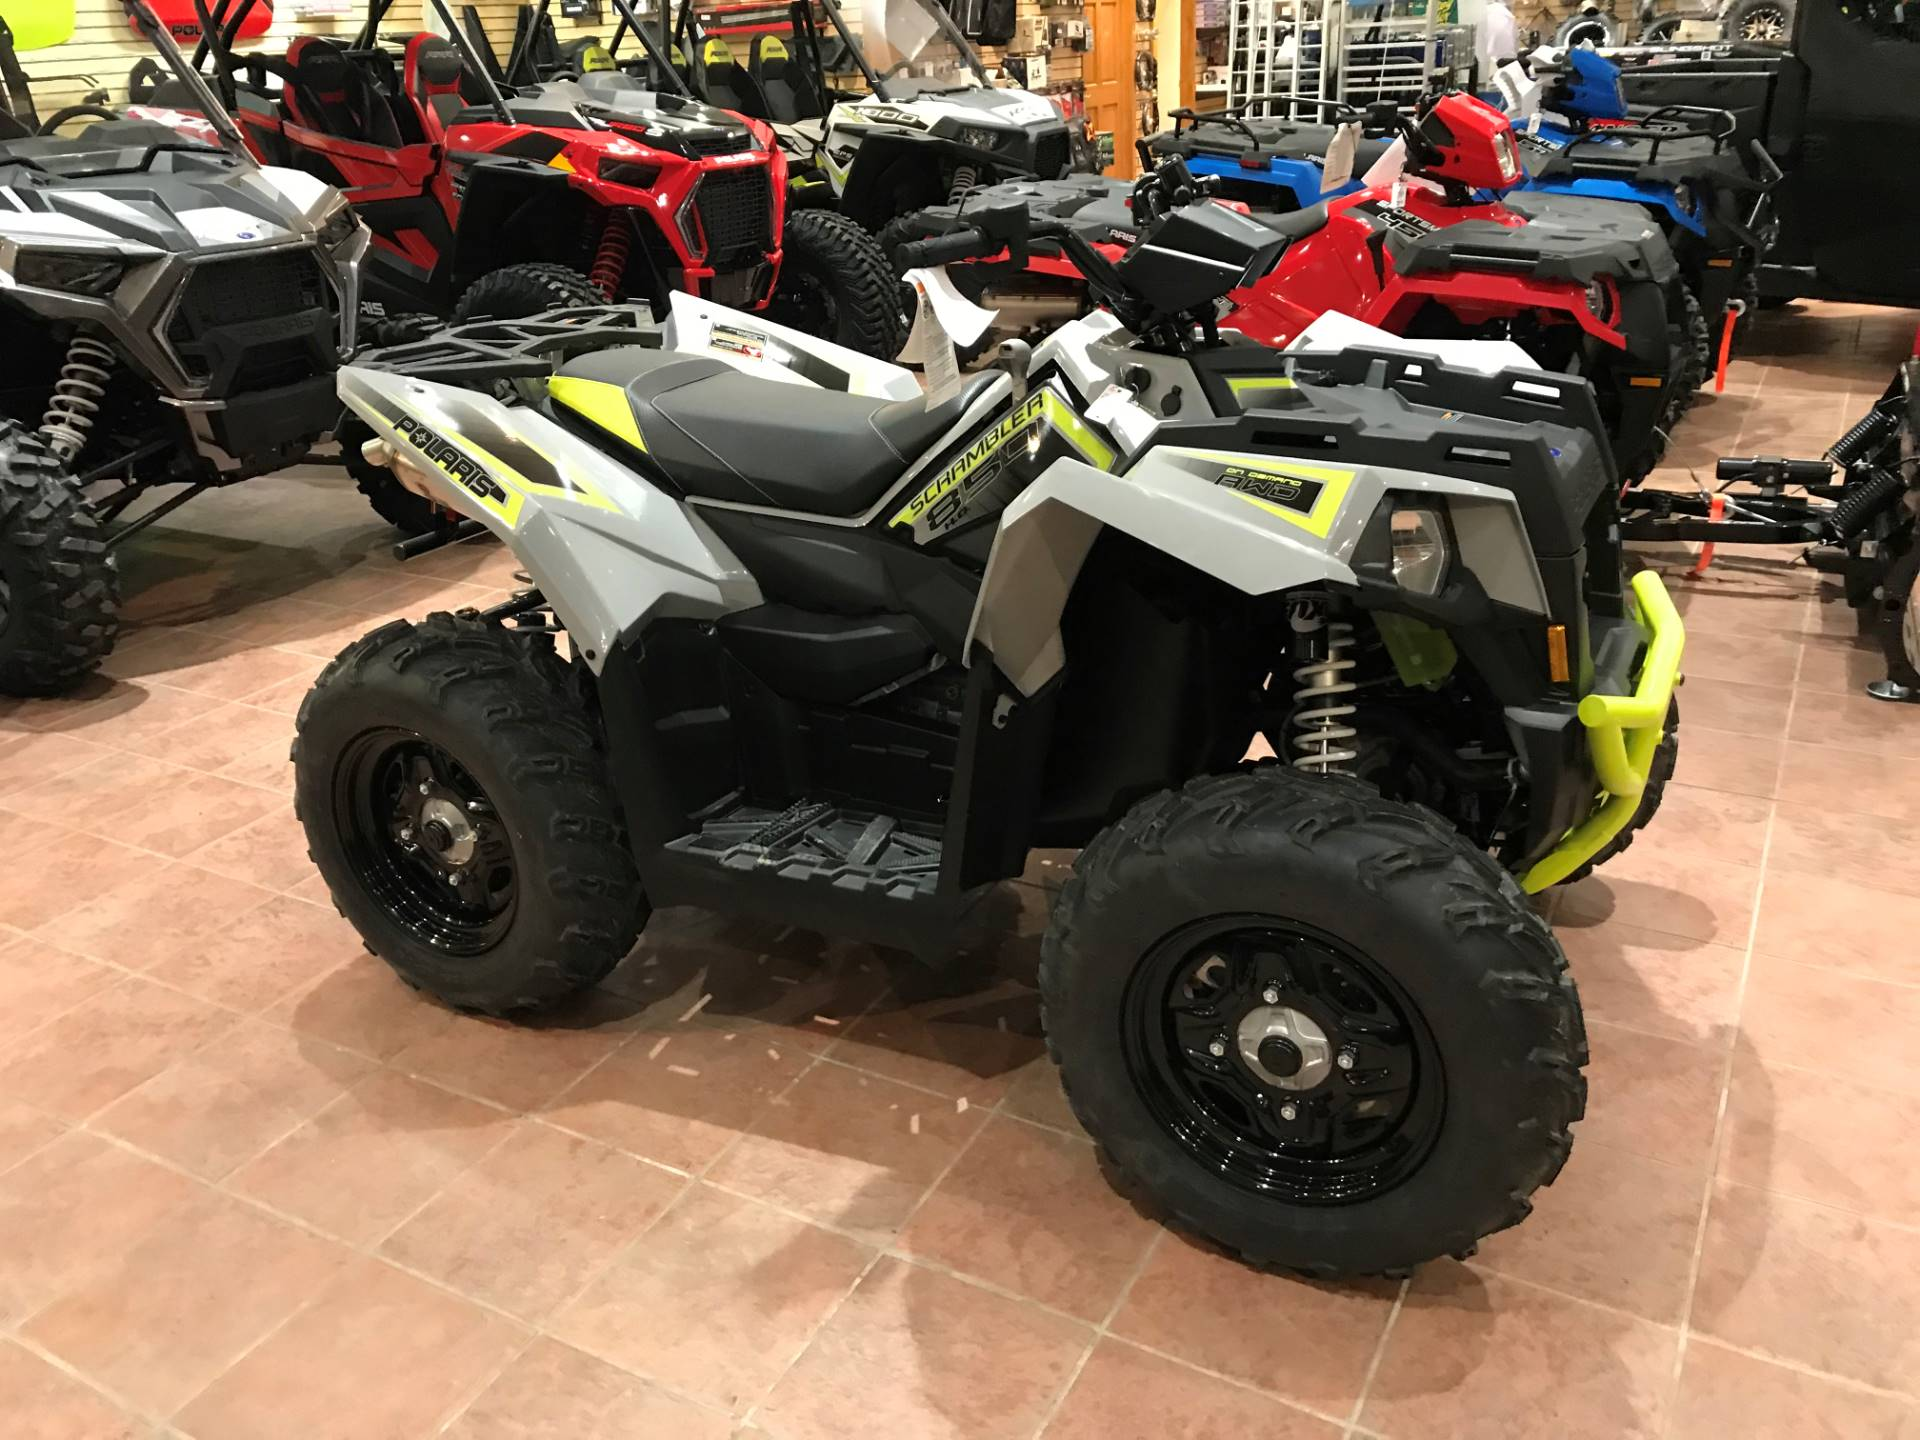 2019 Polaris Scrambler 850 in Beaver Falls, Pennsylvania - Photo 2